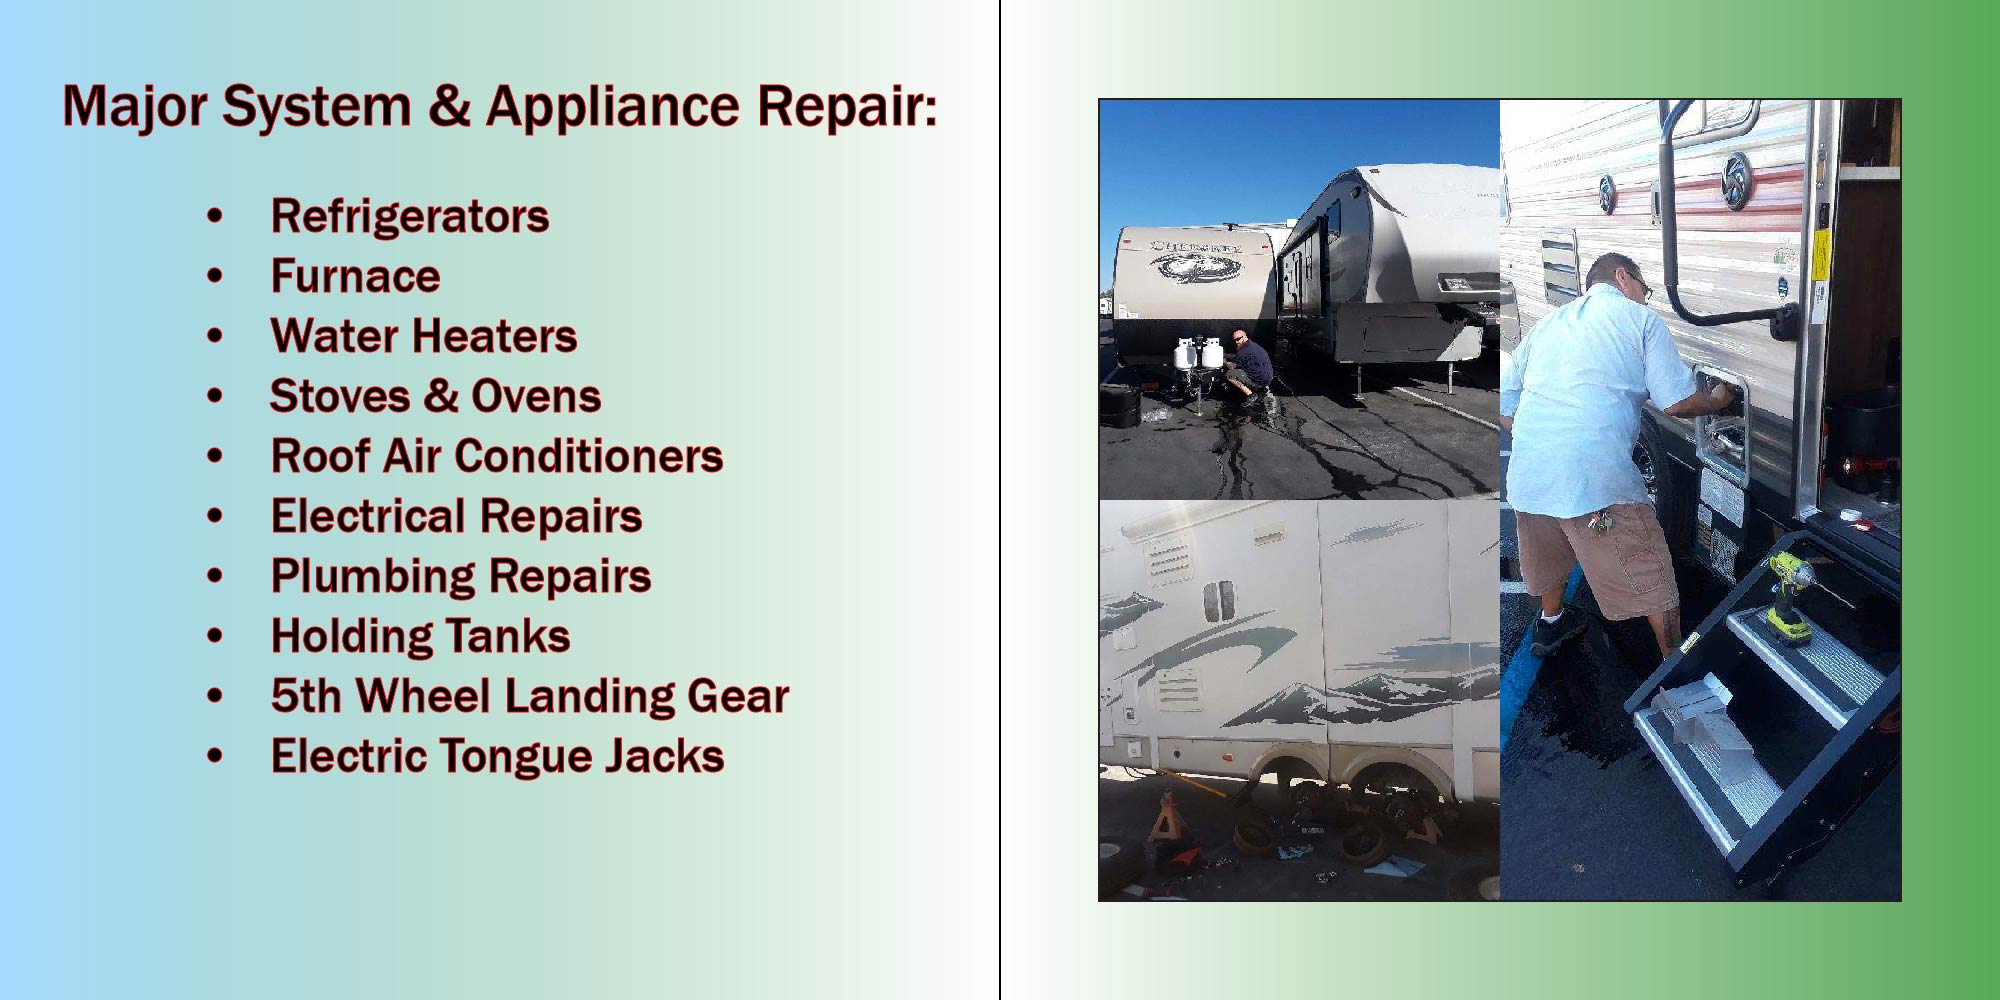 Major System & Appliance Repair